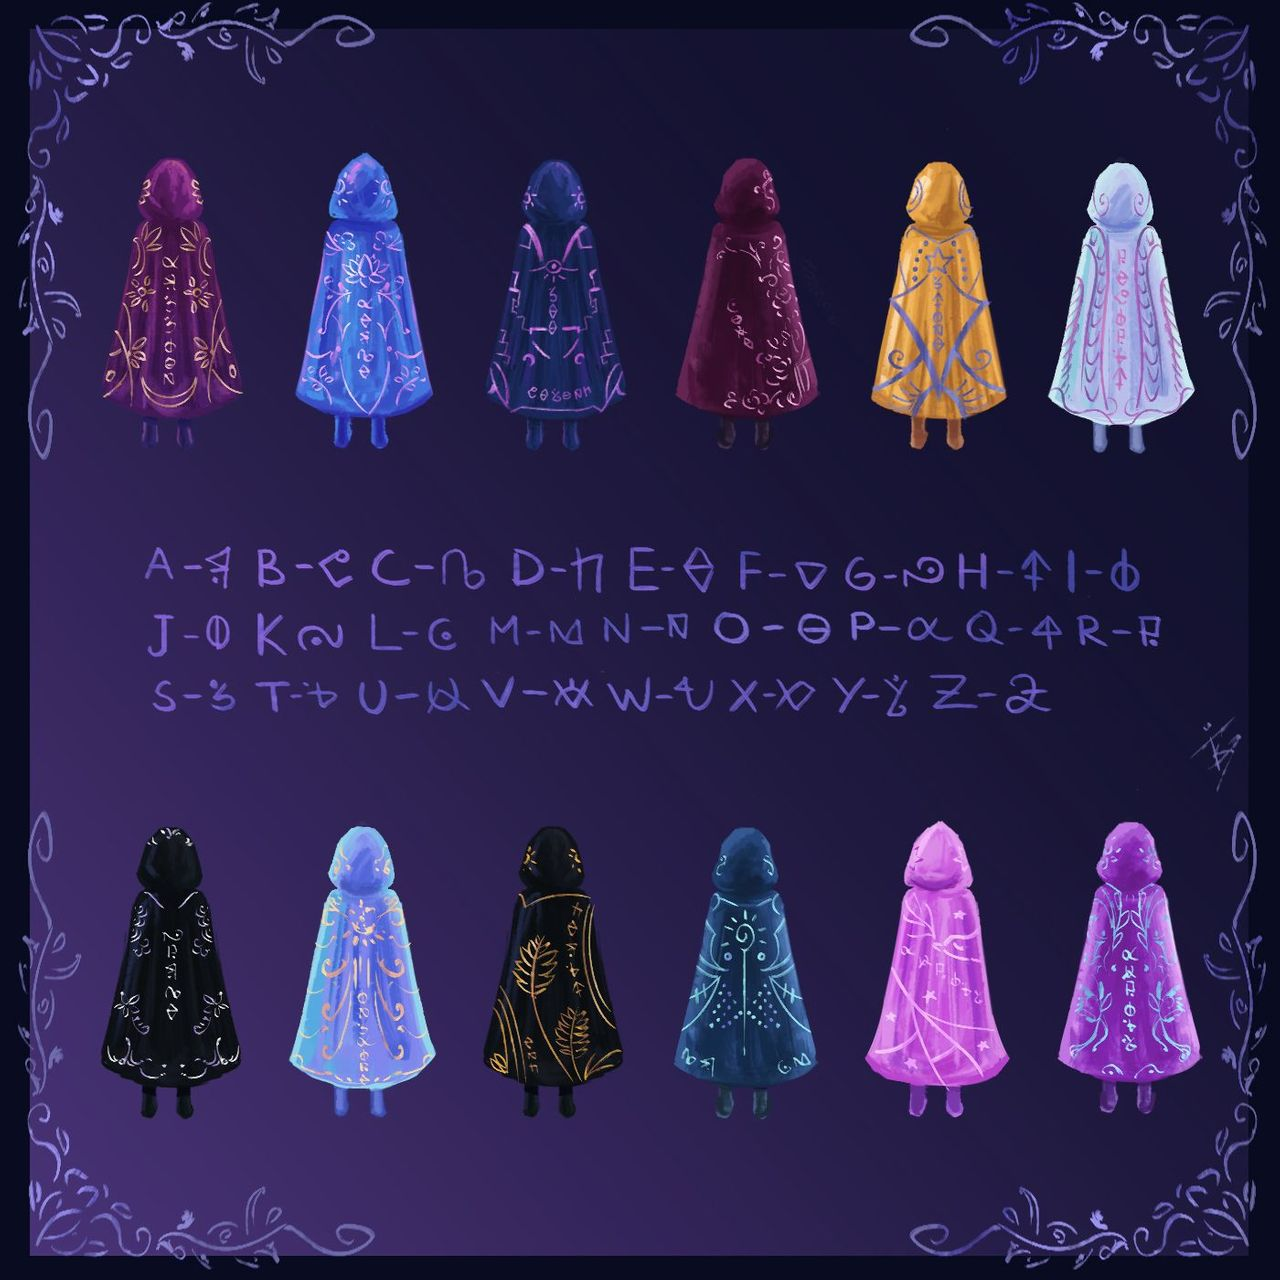 cloaks preview2BSquare.jpg